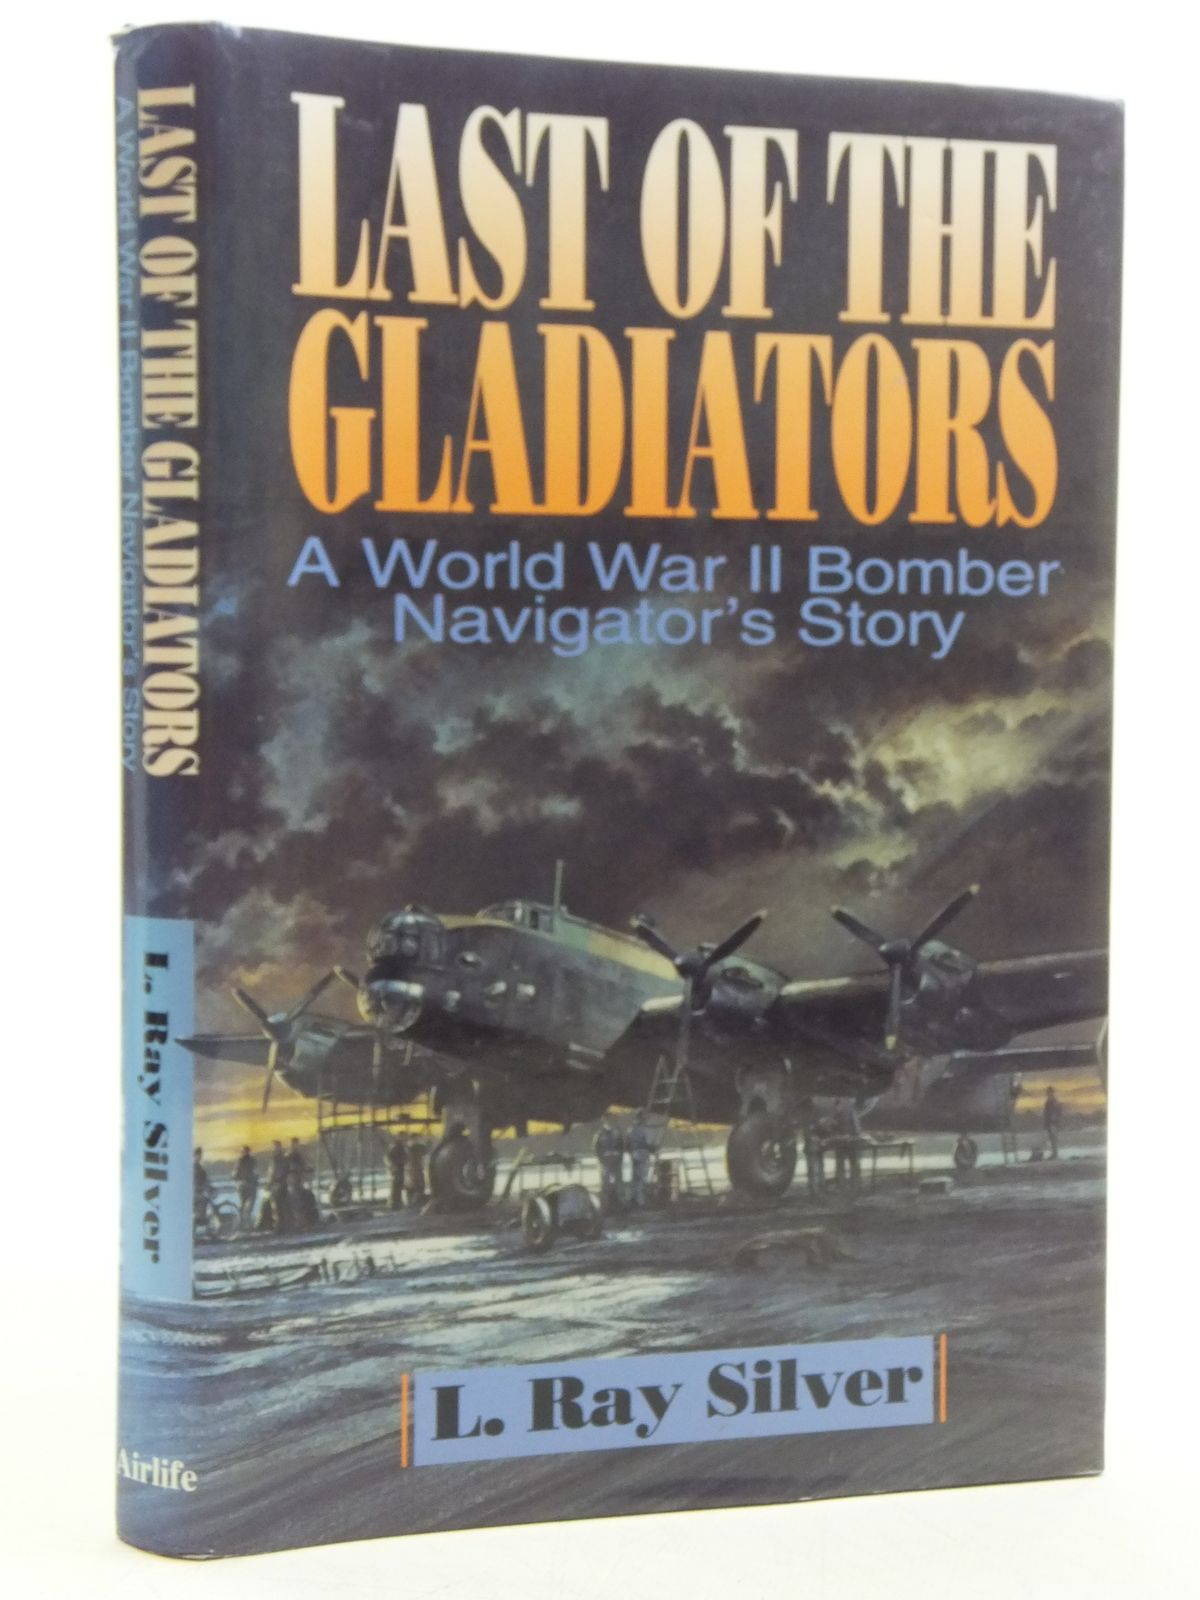 Photo of LAST OF THE GLADIATORS A WORLD WAR II BOMBER NAVIGATOR'S STORY written by Silver, L. Ray published by Airlife (STOCK CODE: 2120365)  for sale by Stella & Rose's Books